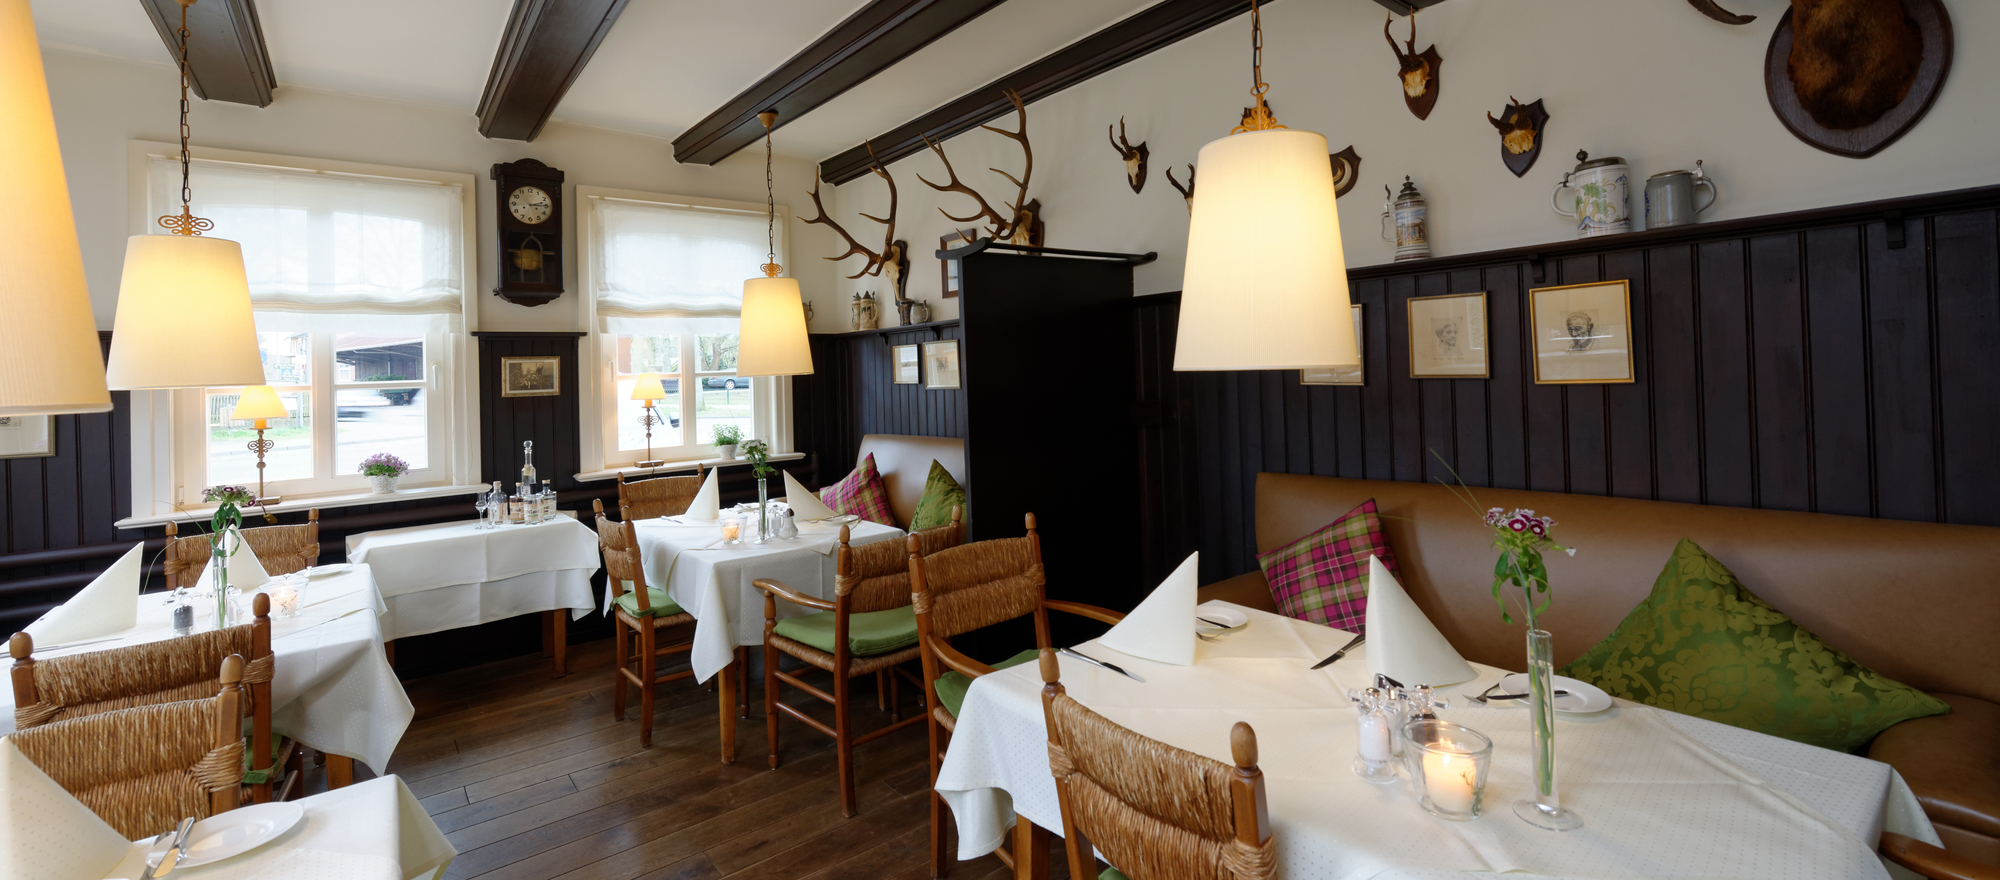 Refined cuisine in the traditional restaurant at at the 4-star hotel Ringhotel Sellhorn in Hanstedt